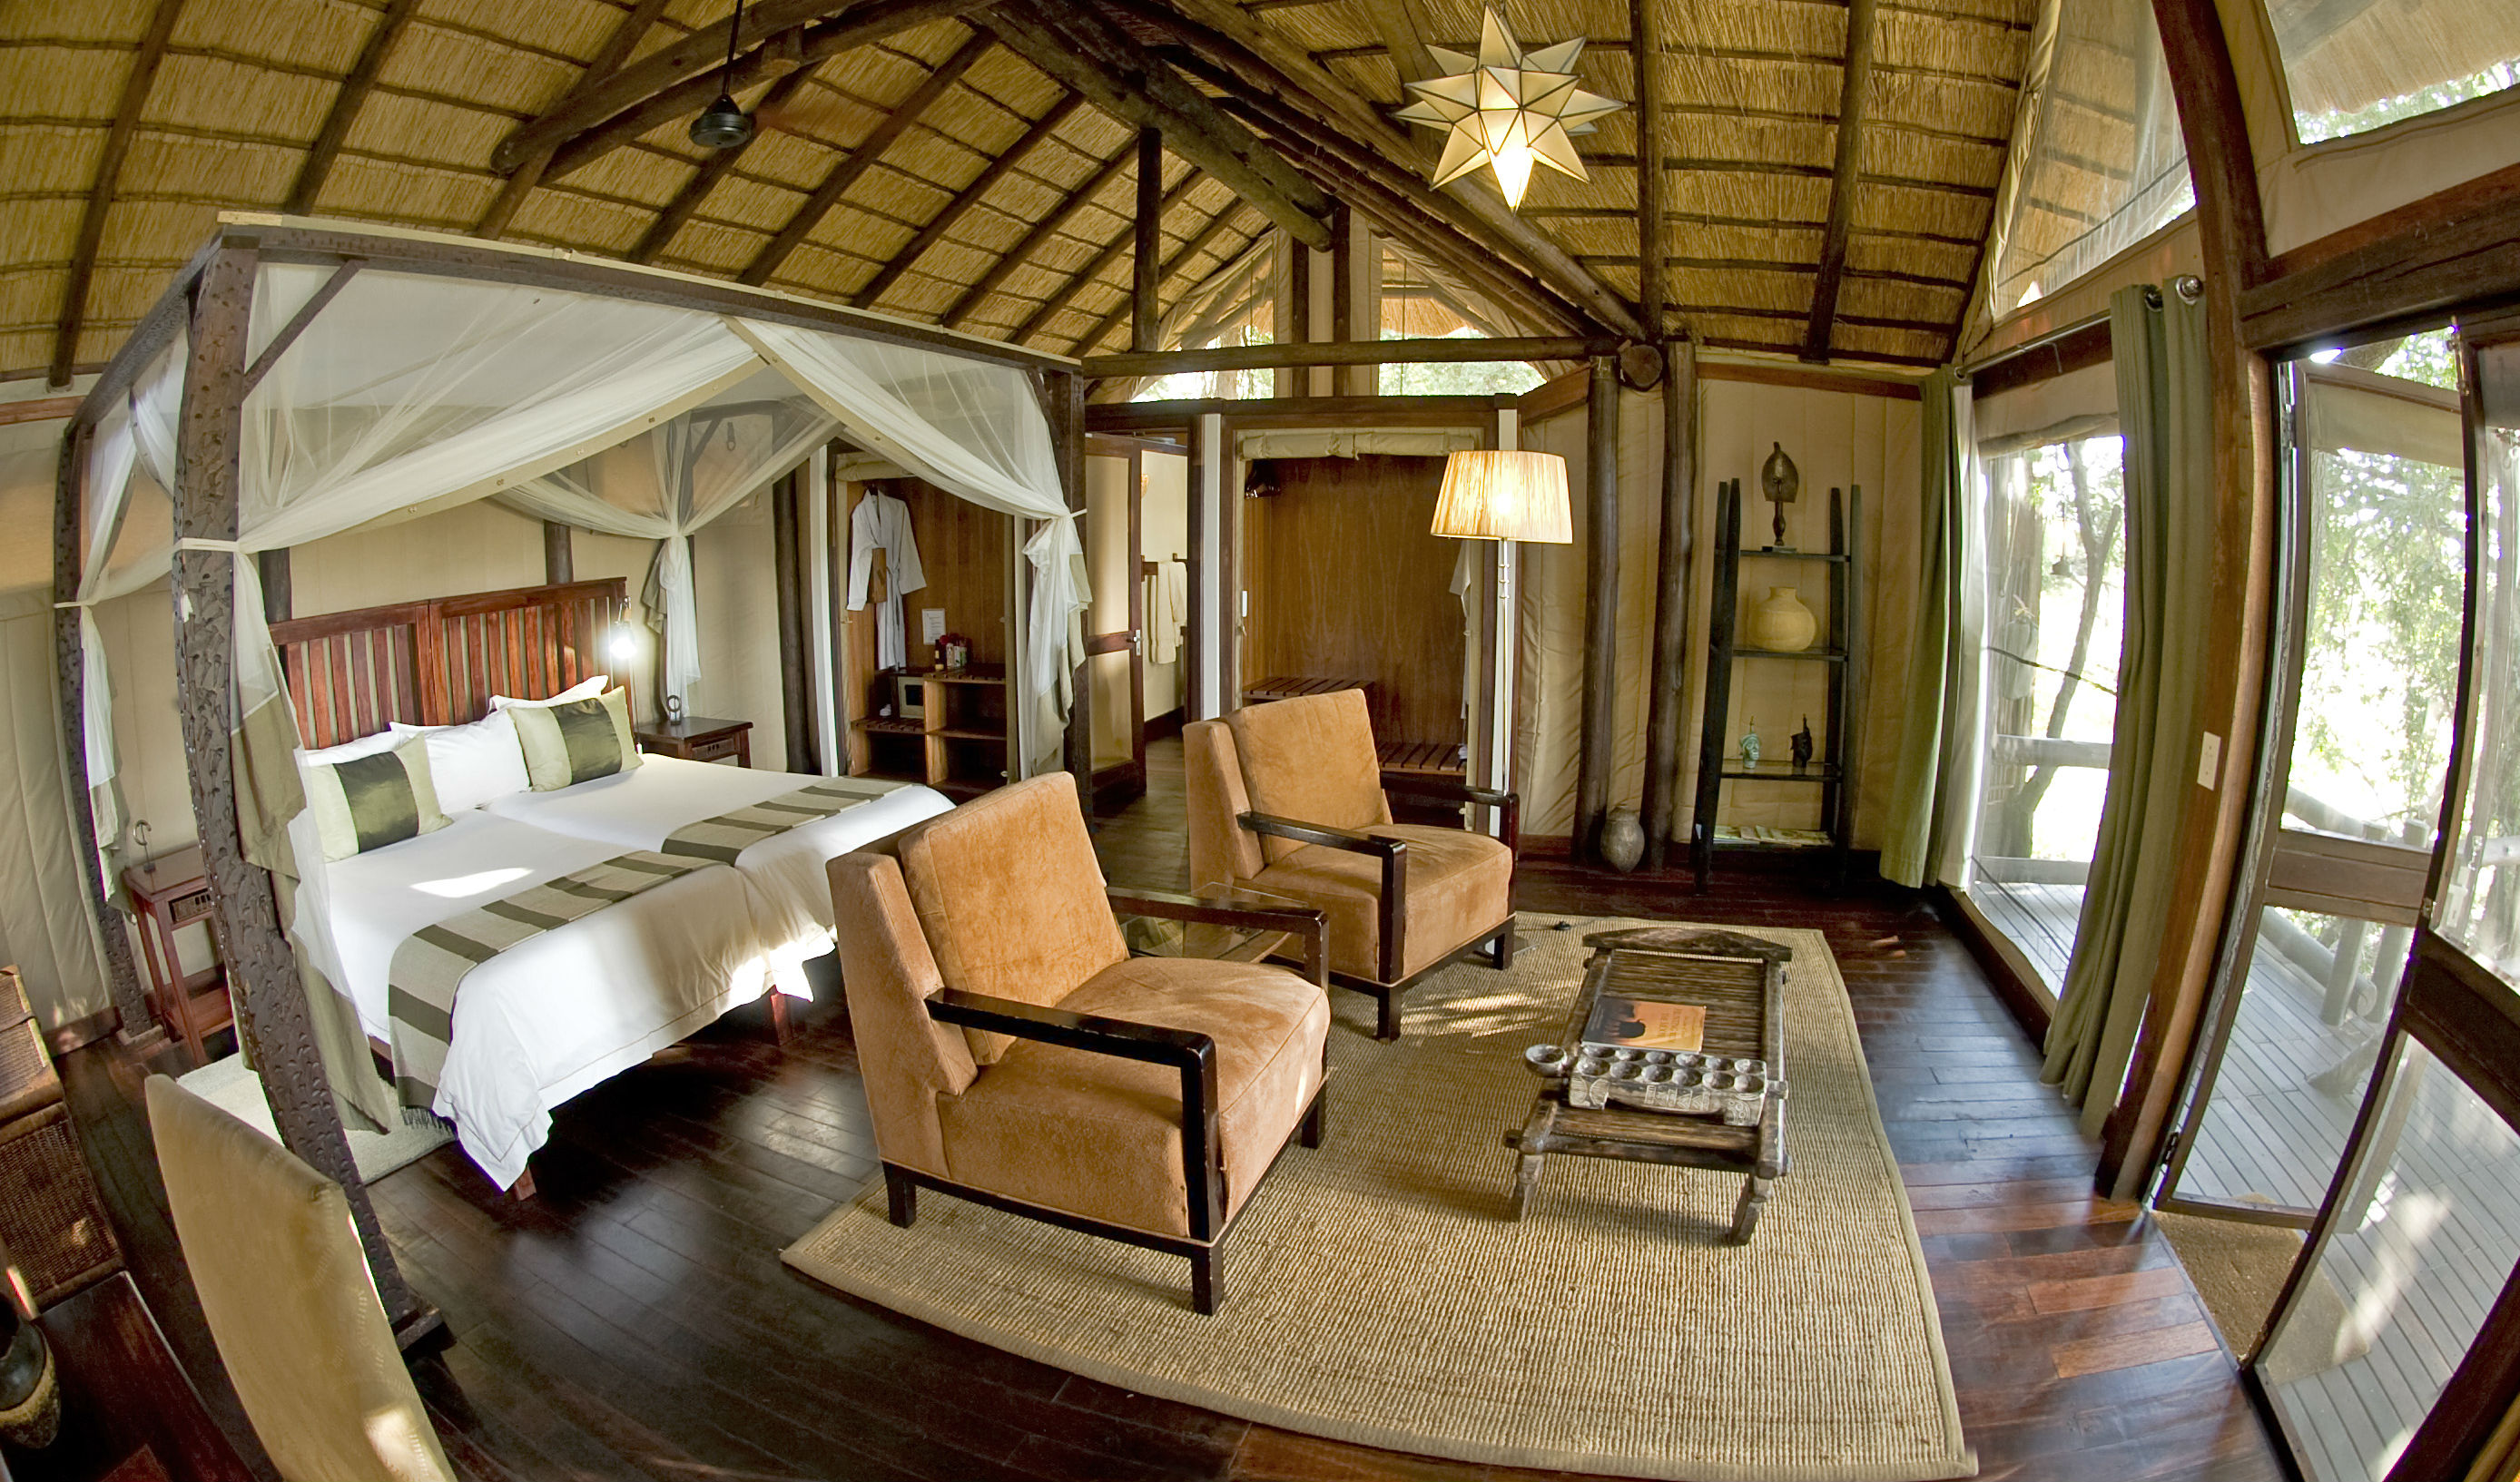 Luxury holiday in Botswana